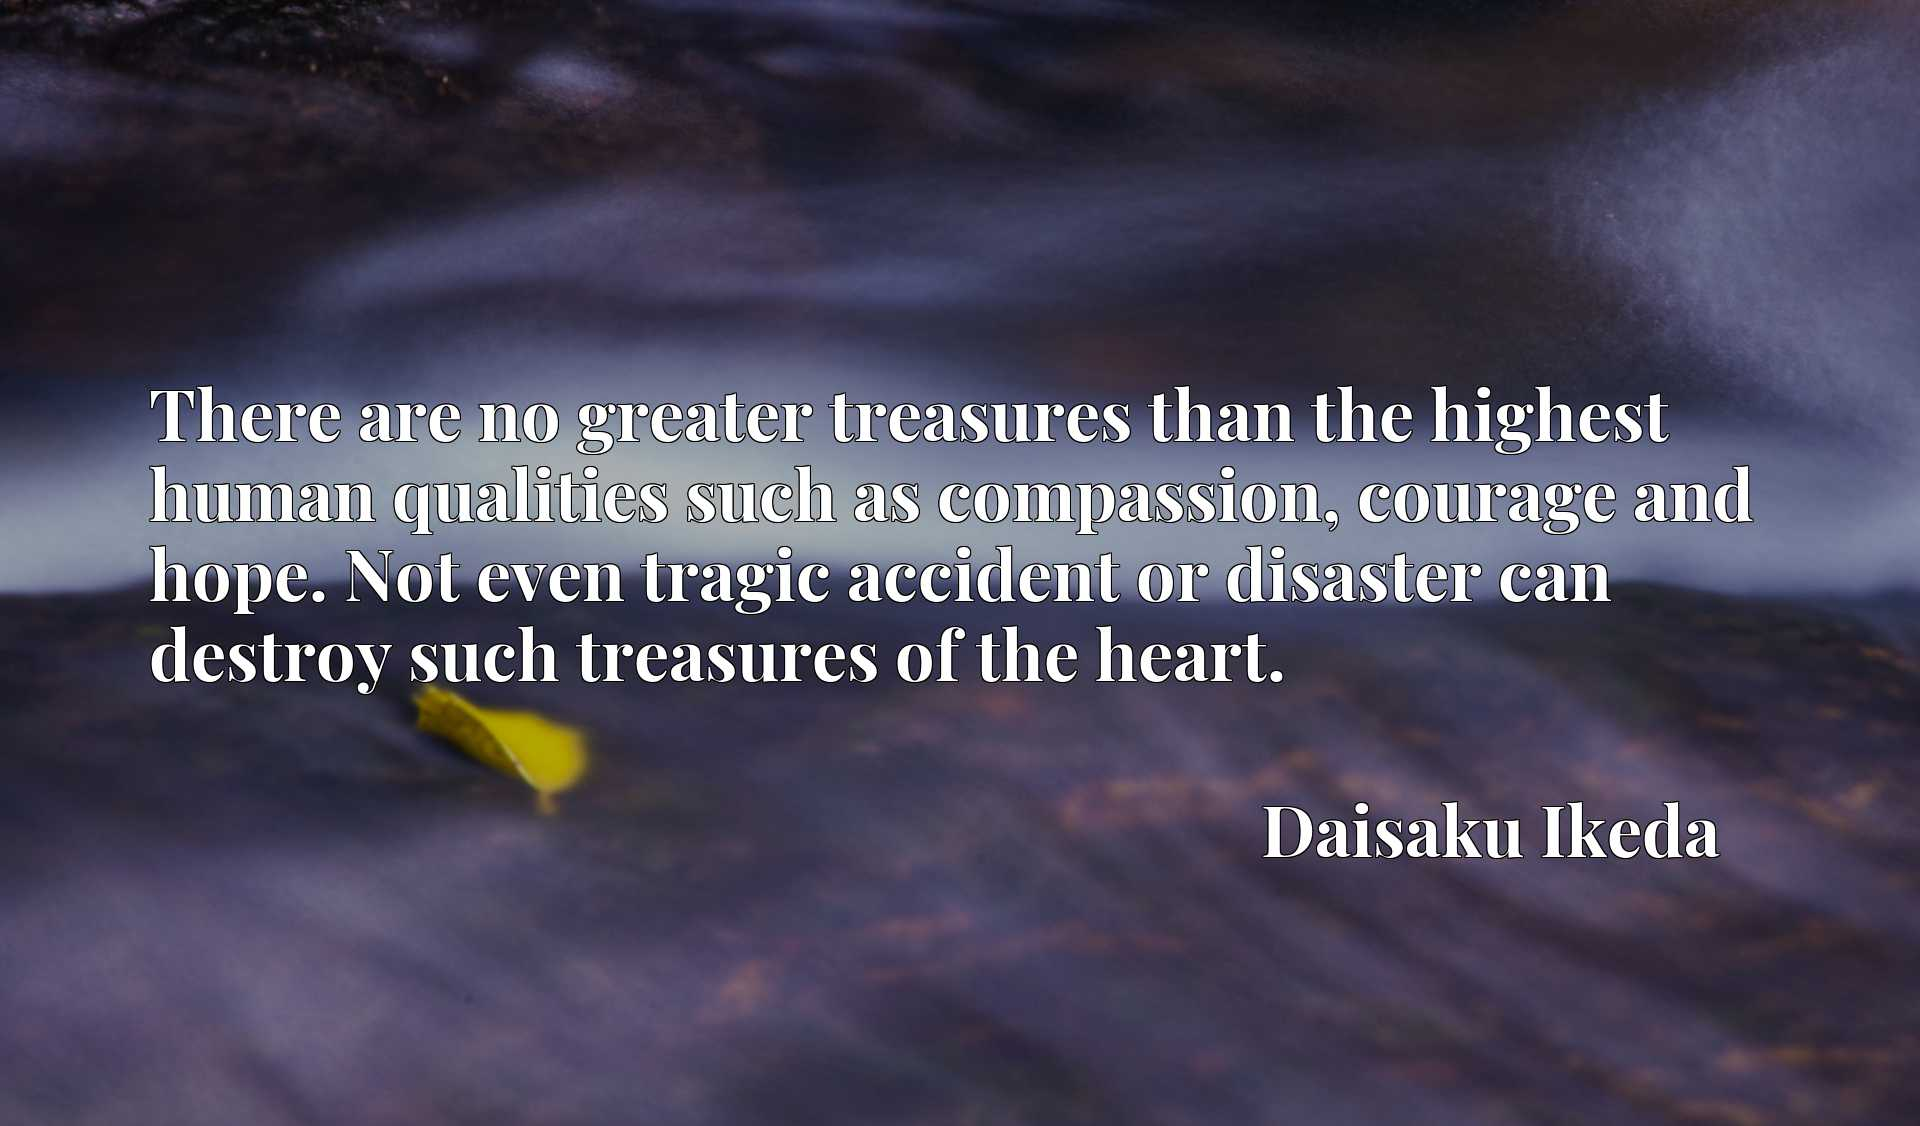 There are no greater treasures than the highest human qualities such as compassion, courage and hope. Not even tragic accident or disaster can destroy such treasures of the heart.